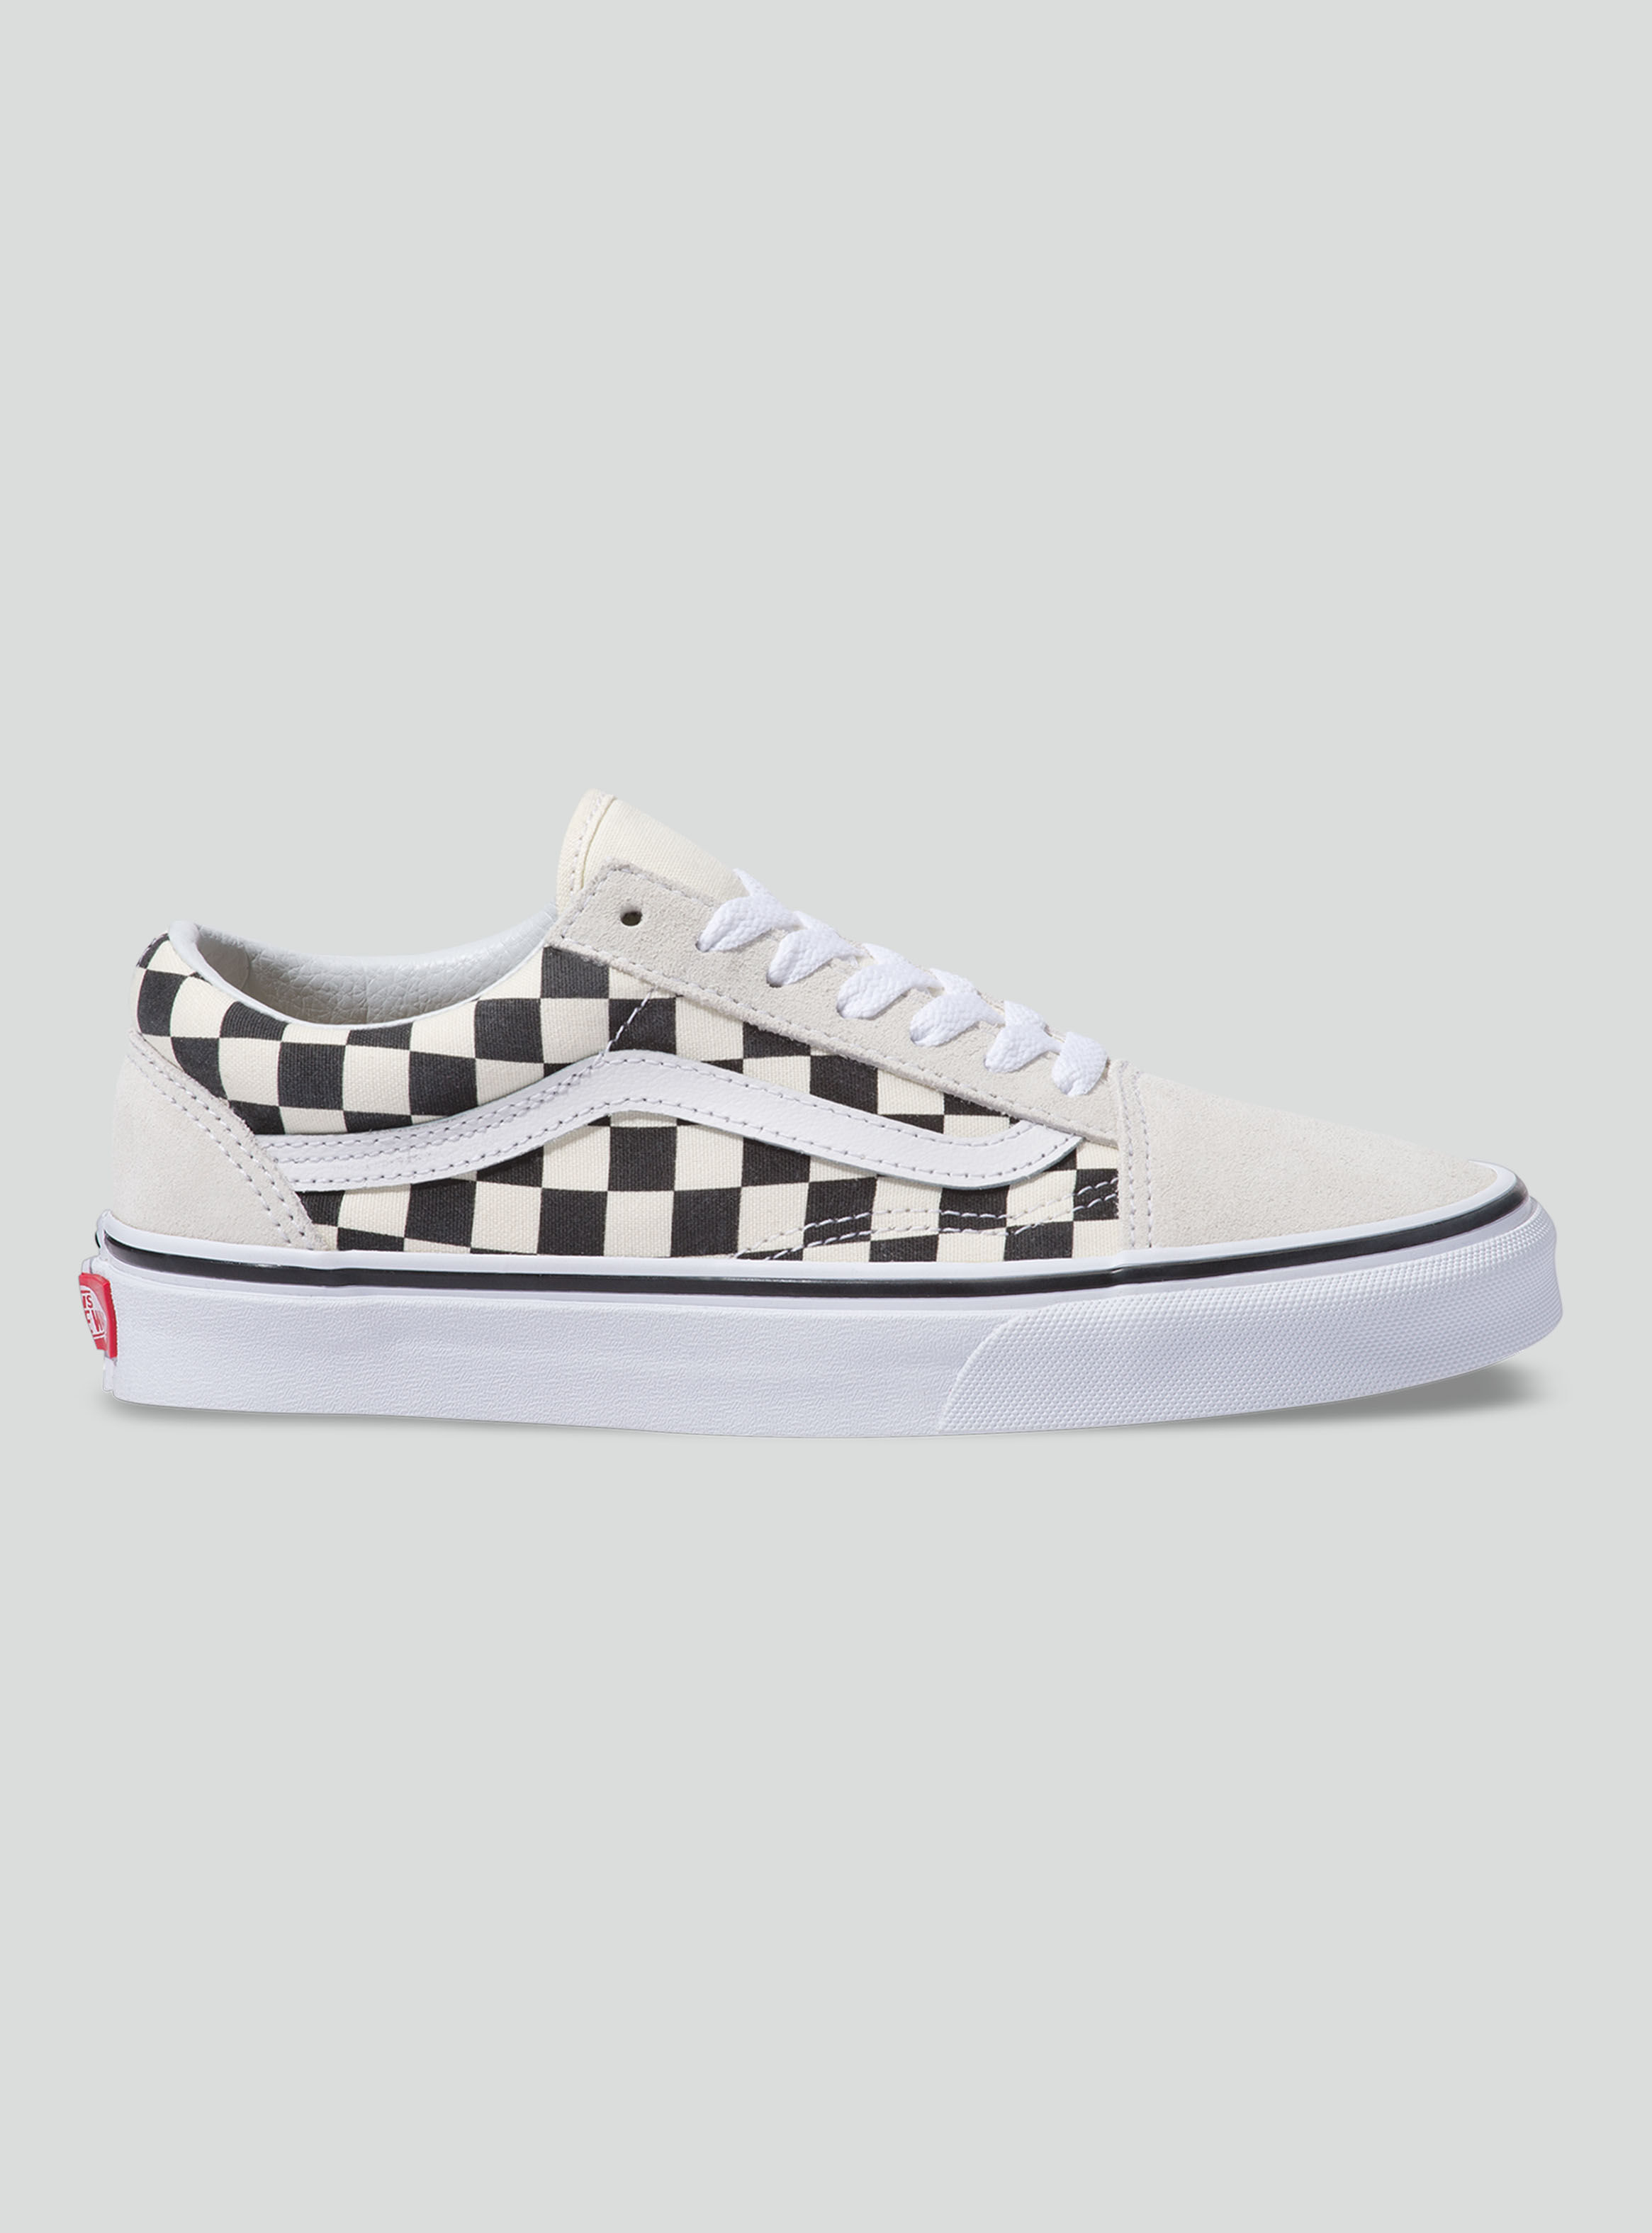 old skool vans cuadros